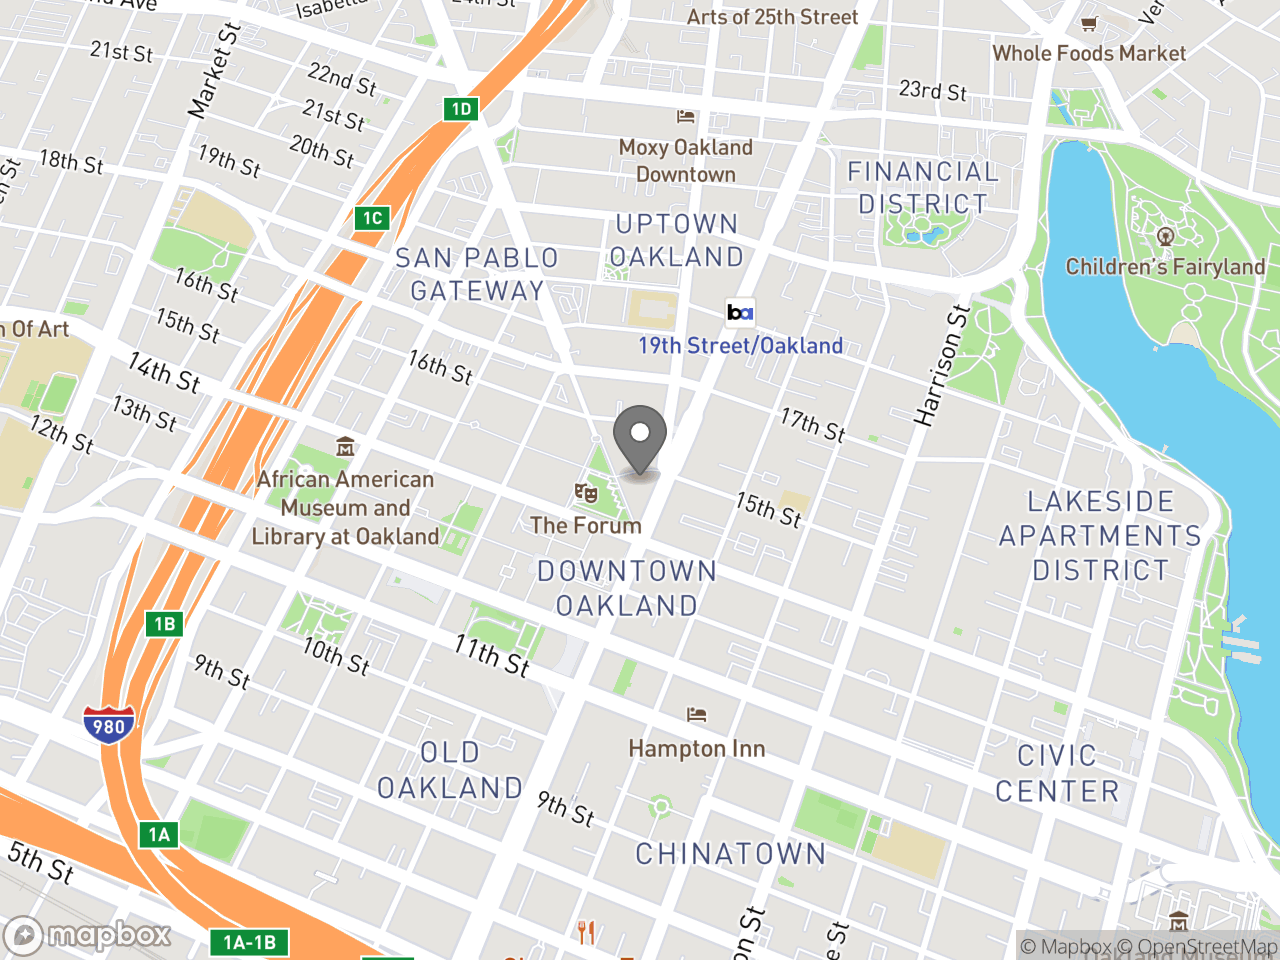 Map image for Aging Services, located at 150 Frank H. Ogawa Plaza in Oakland, CA 94612